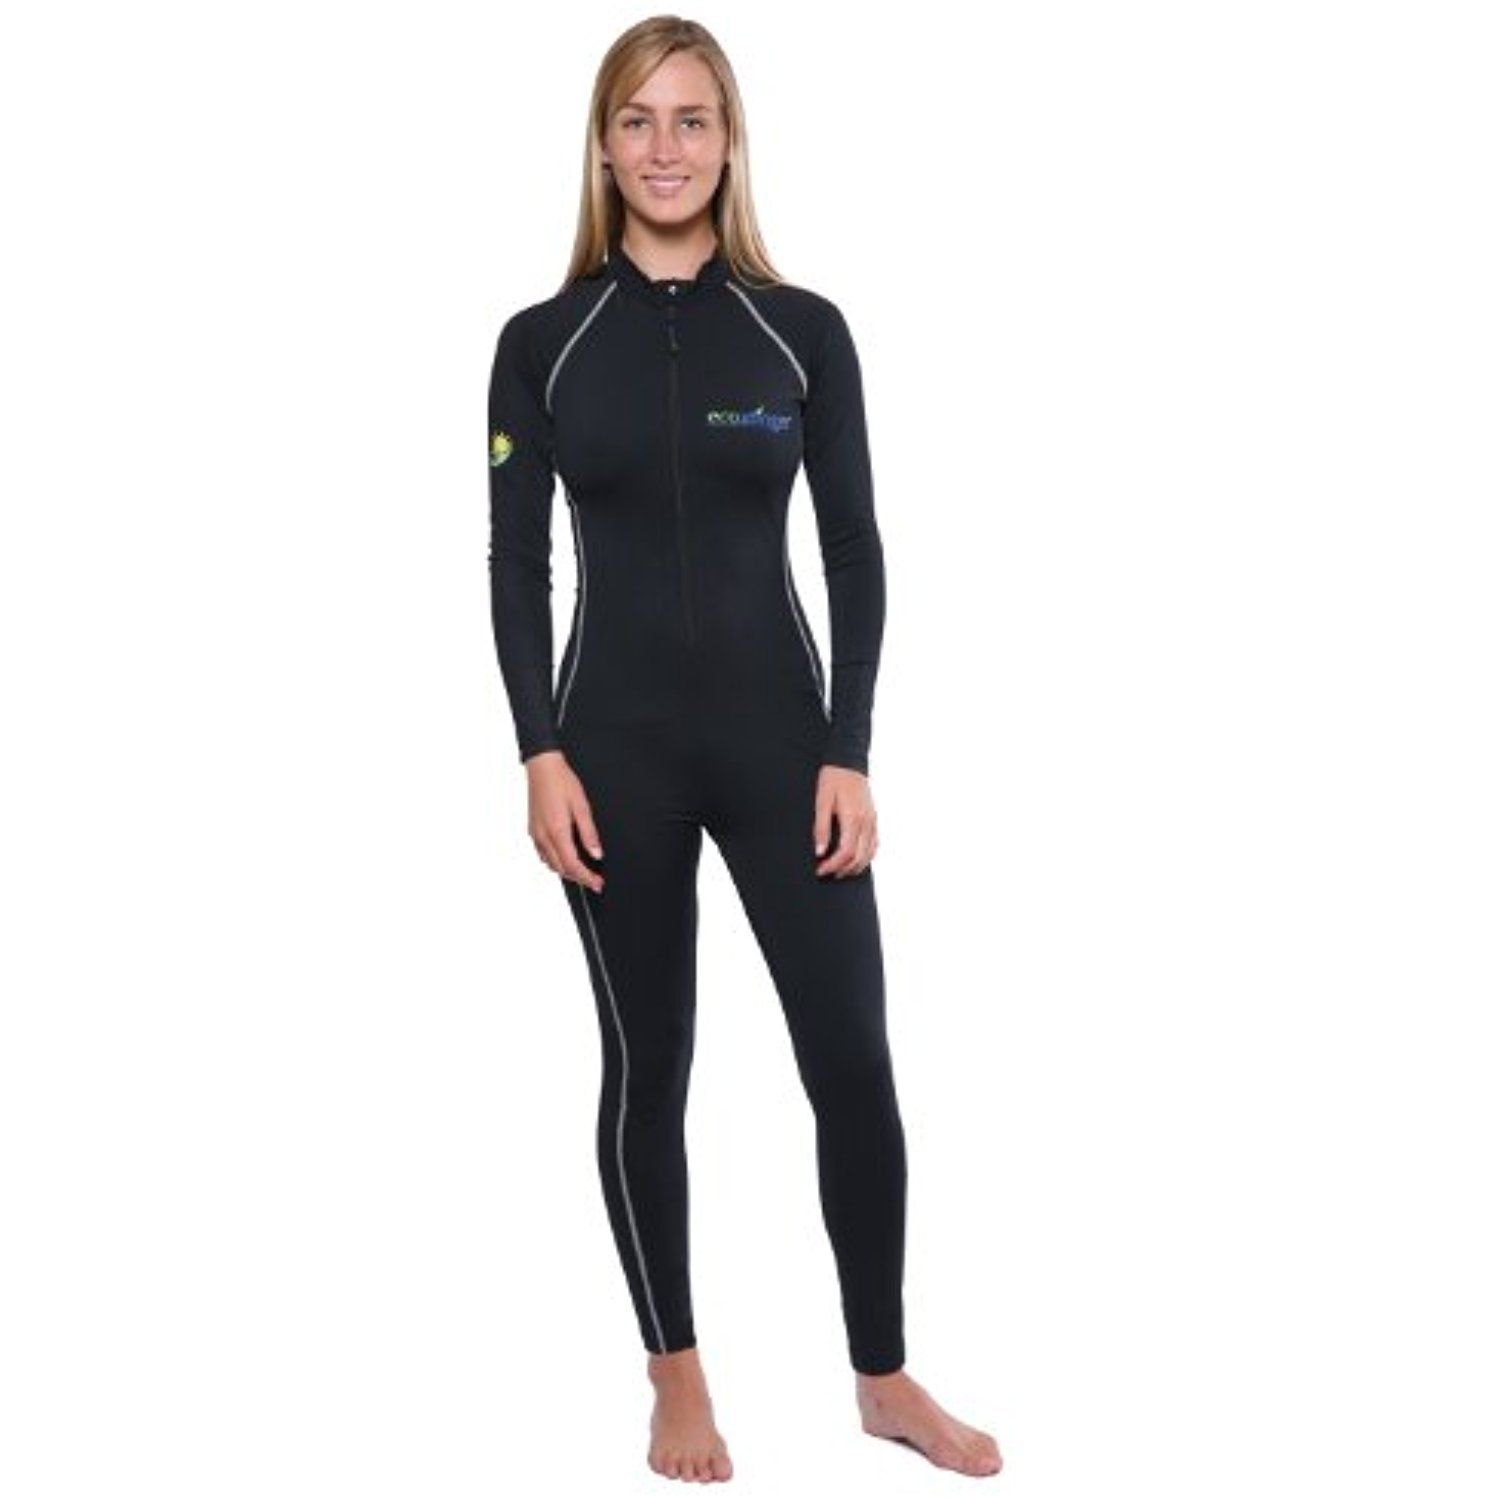 390368a91b0a6 Women's Sun Protection Full Body Lining Swimsuit Stinger Suit Dive Skin  UPF50 Black -- Click image for more details. (This is an affiliate link) # Swimwear